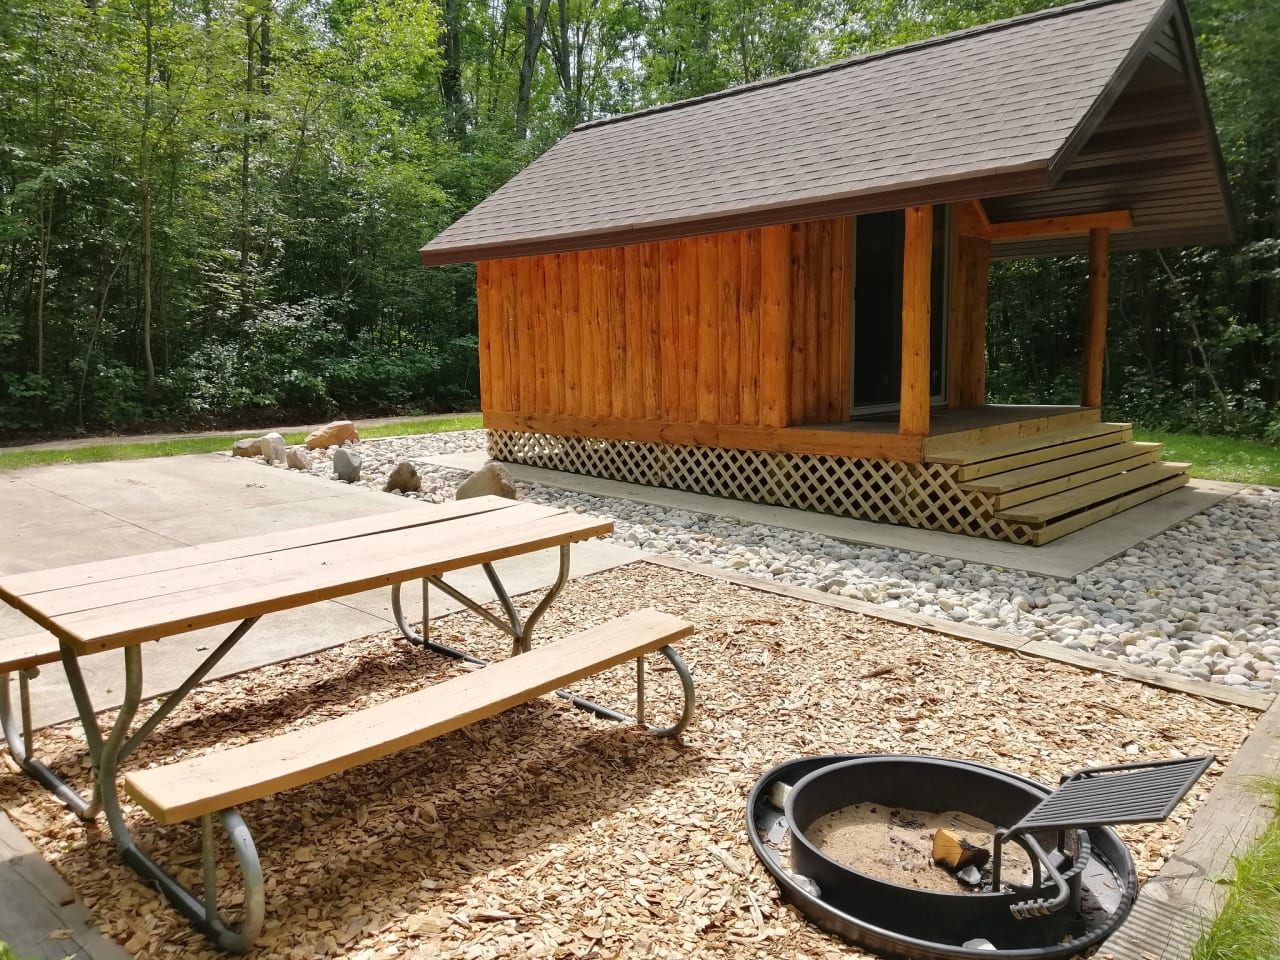 Photo of a  Camping Cabin at Pine River Paddlesports Campground